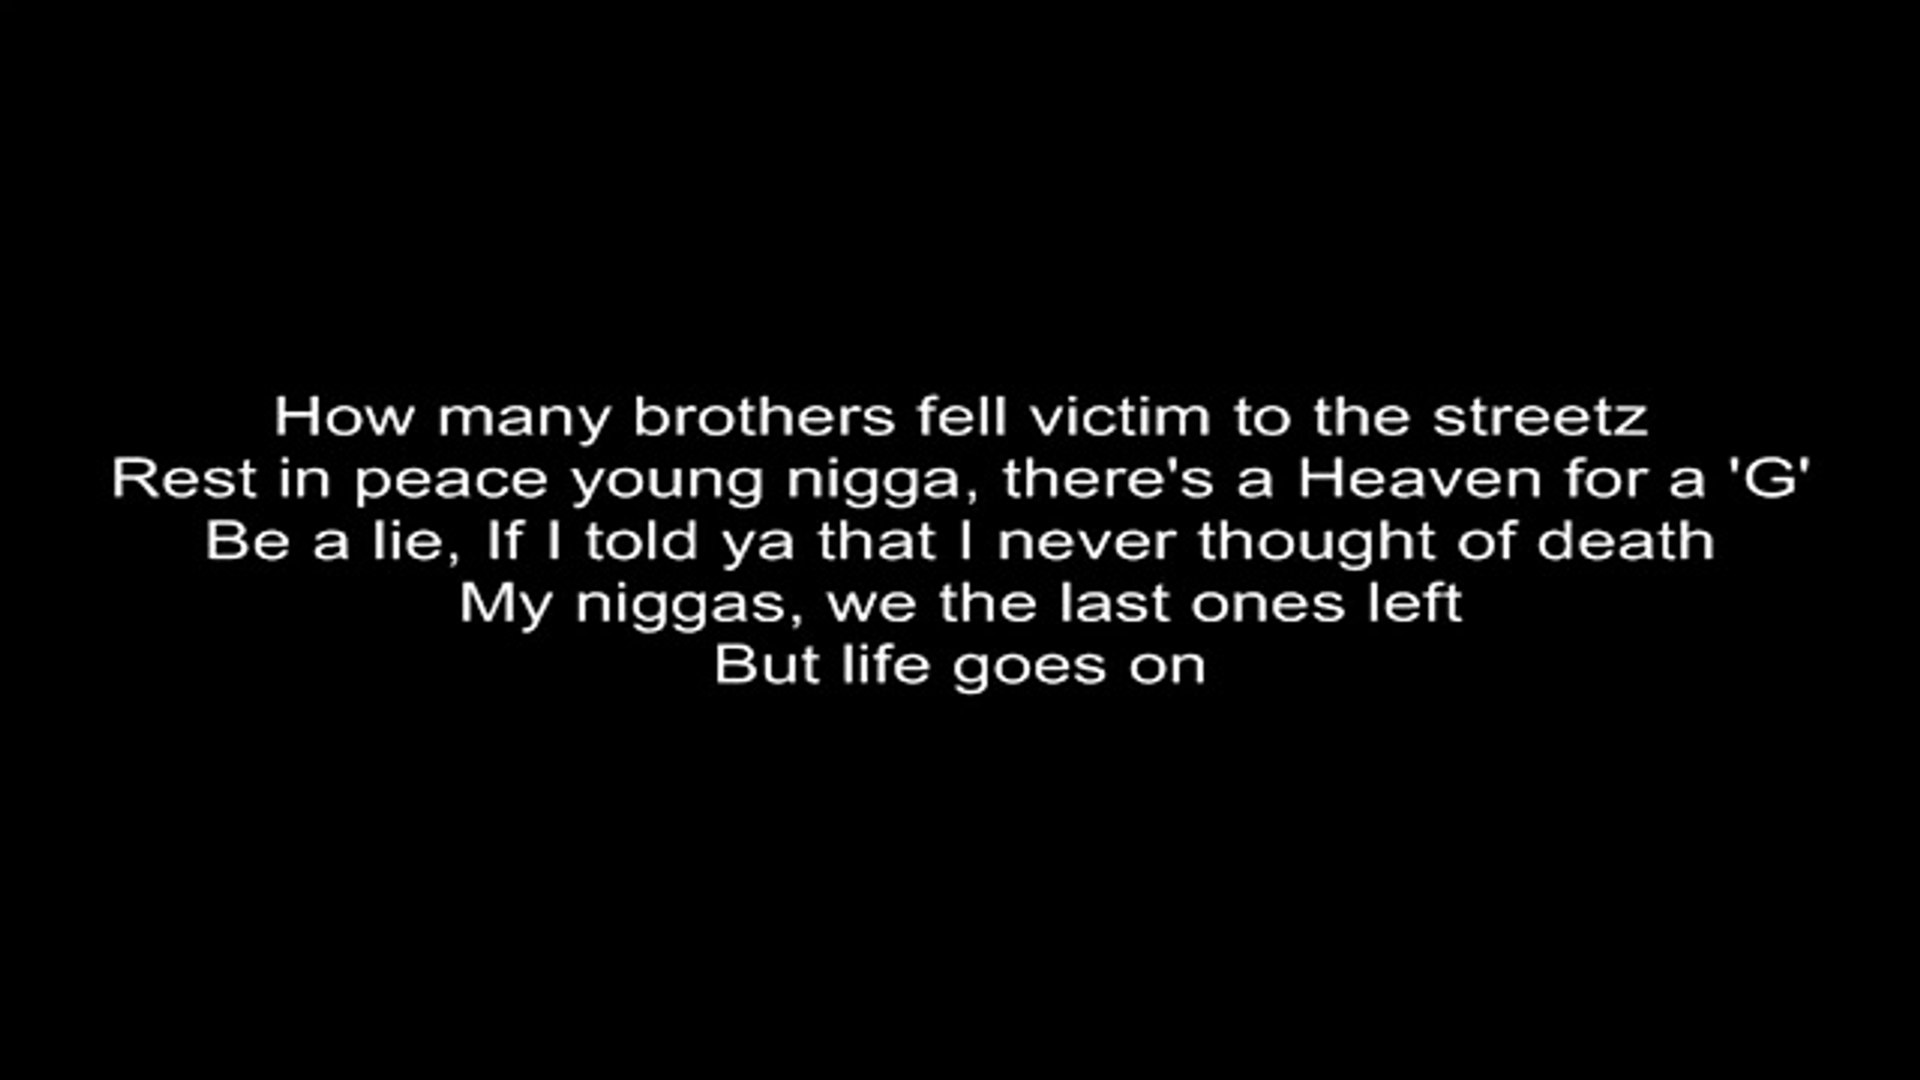 Tupac - Life goes on lyrics HD